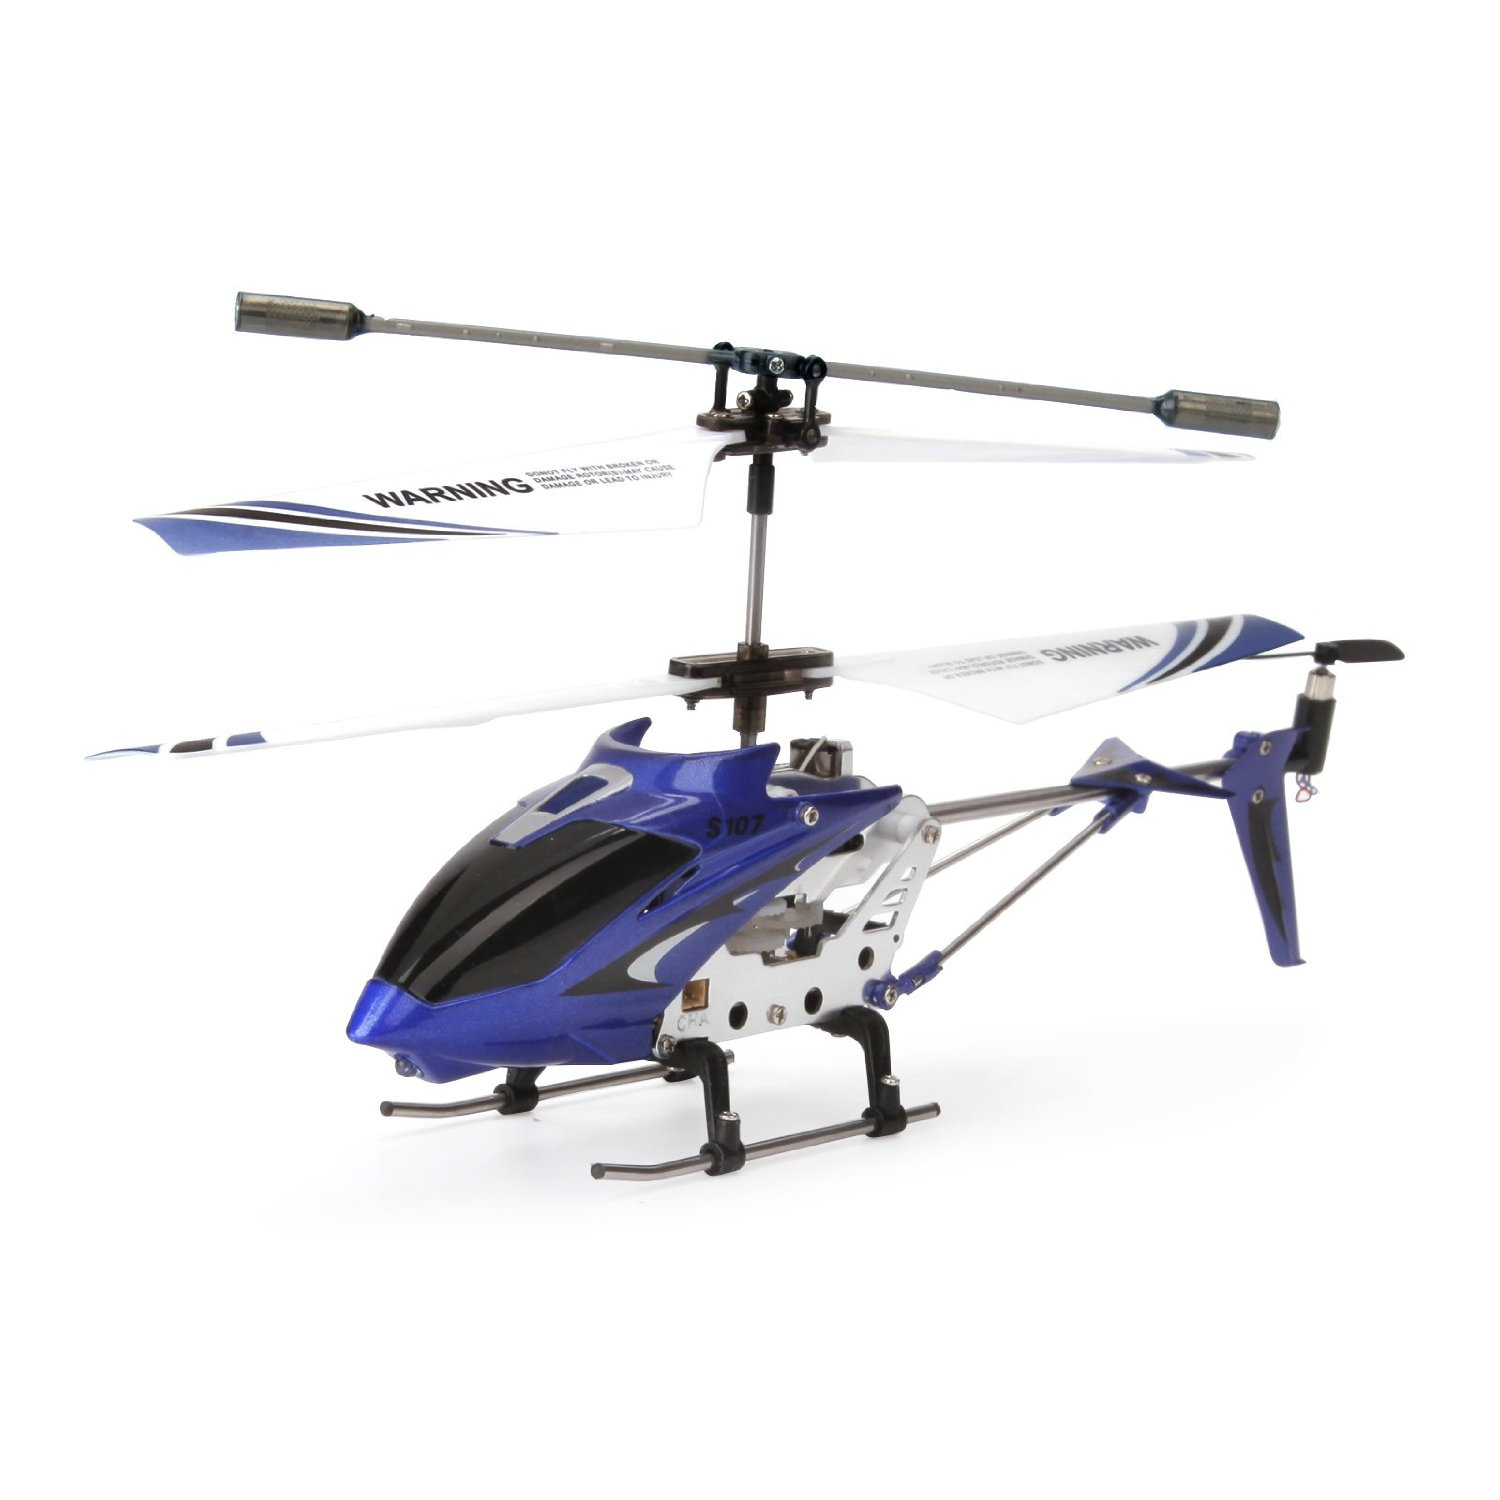 rc helicopter 3 5 channel with Syma S107 Rc Helicopter Only 19 83 Reg 129 99 on Watch likewise 181861778069 as well Hot Sales V Max Hx713 2 5ch Rc Helicopter Radio Control Children Kids Thengst I1450300 2007 01 Sale I likewise Syma S107 Rc Helicopter Only 19 83 Reg 129 99 likewise Toy Remote Control Helicopters.